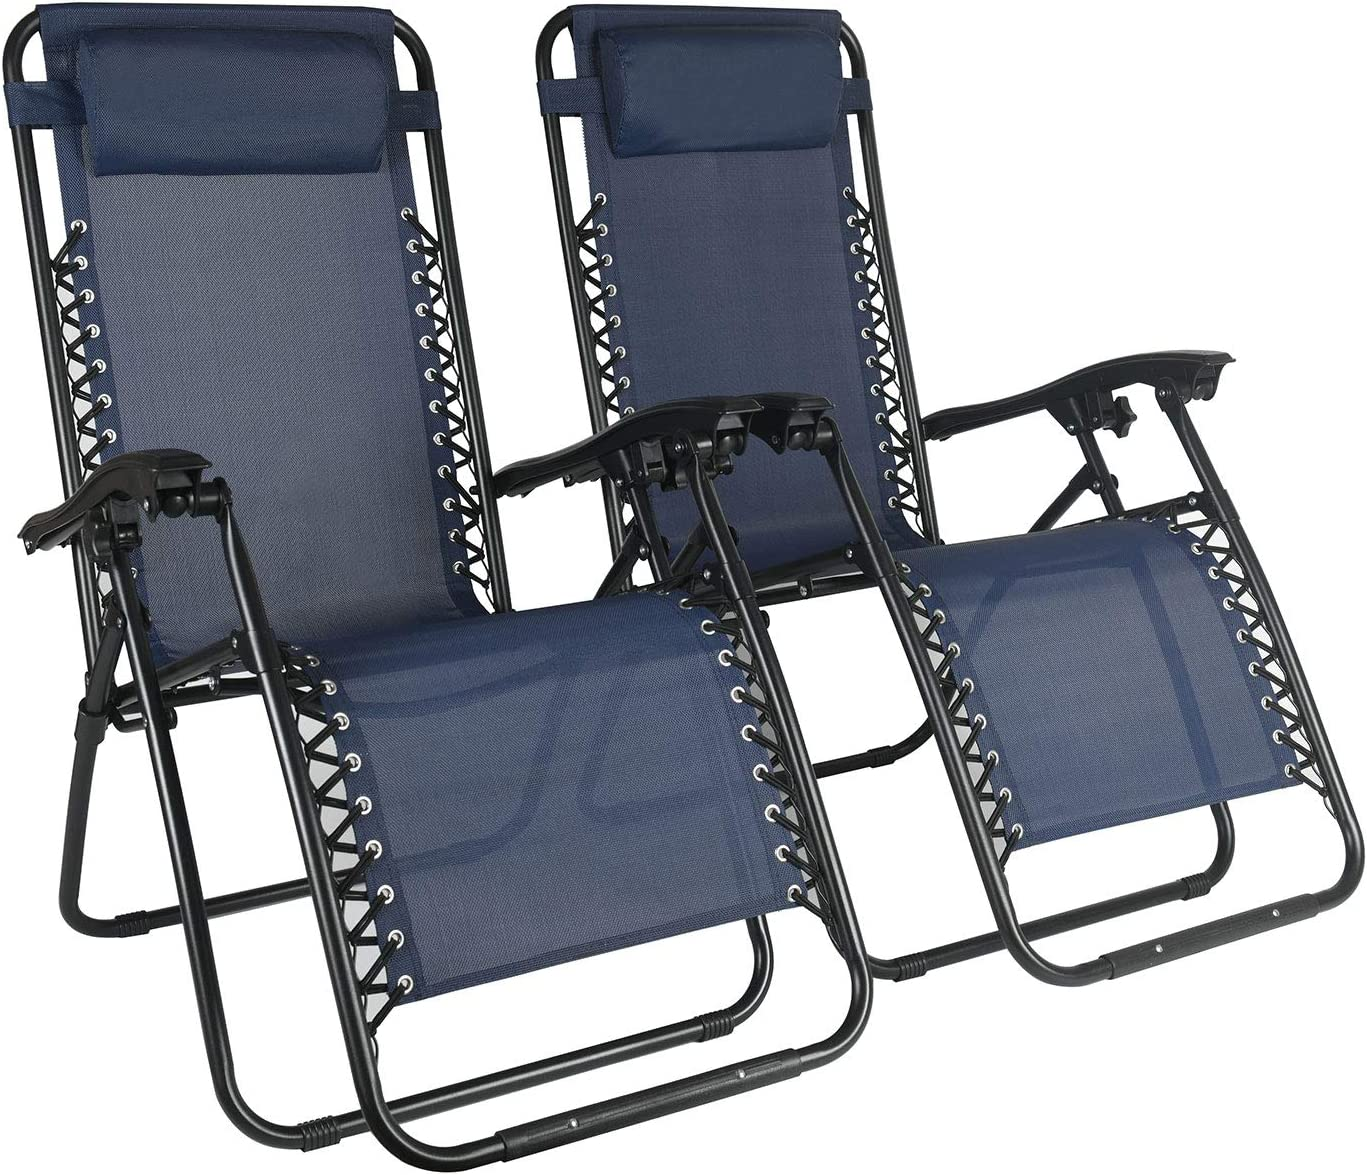 Blue Drakon Zero Gravity Chair with Adjustable Folding Outdoor /& Camp Reclining Lounge Chair with Pillows for Poolside Backyard and Beach Set of 2